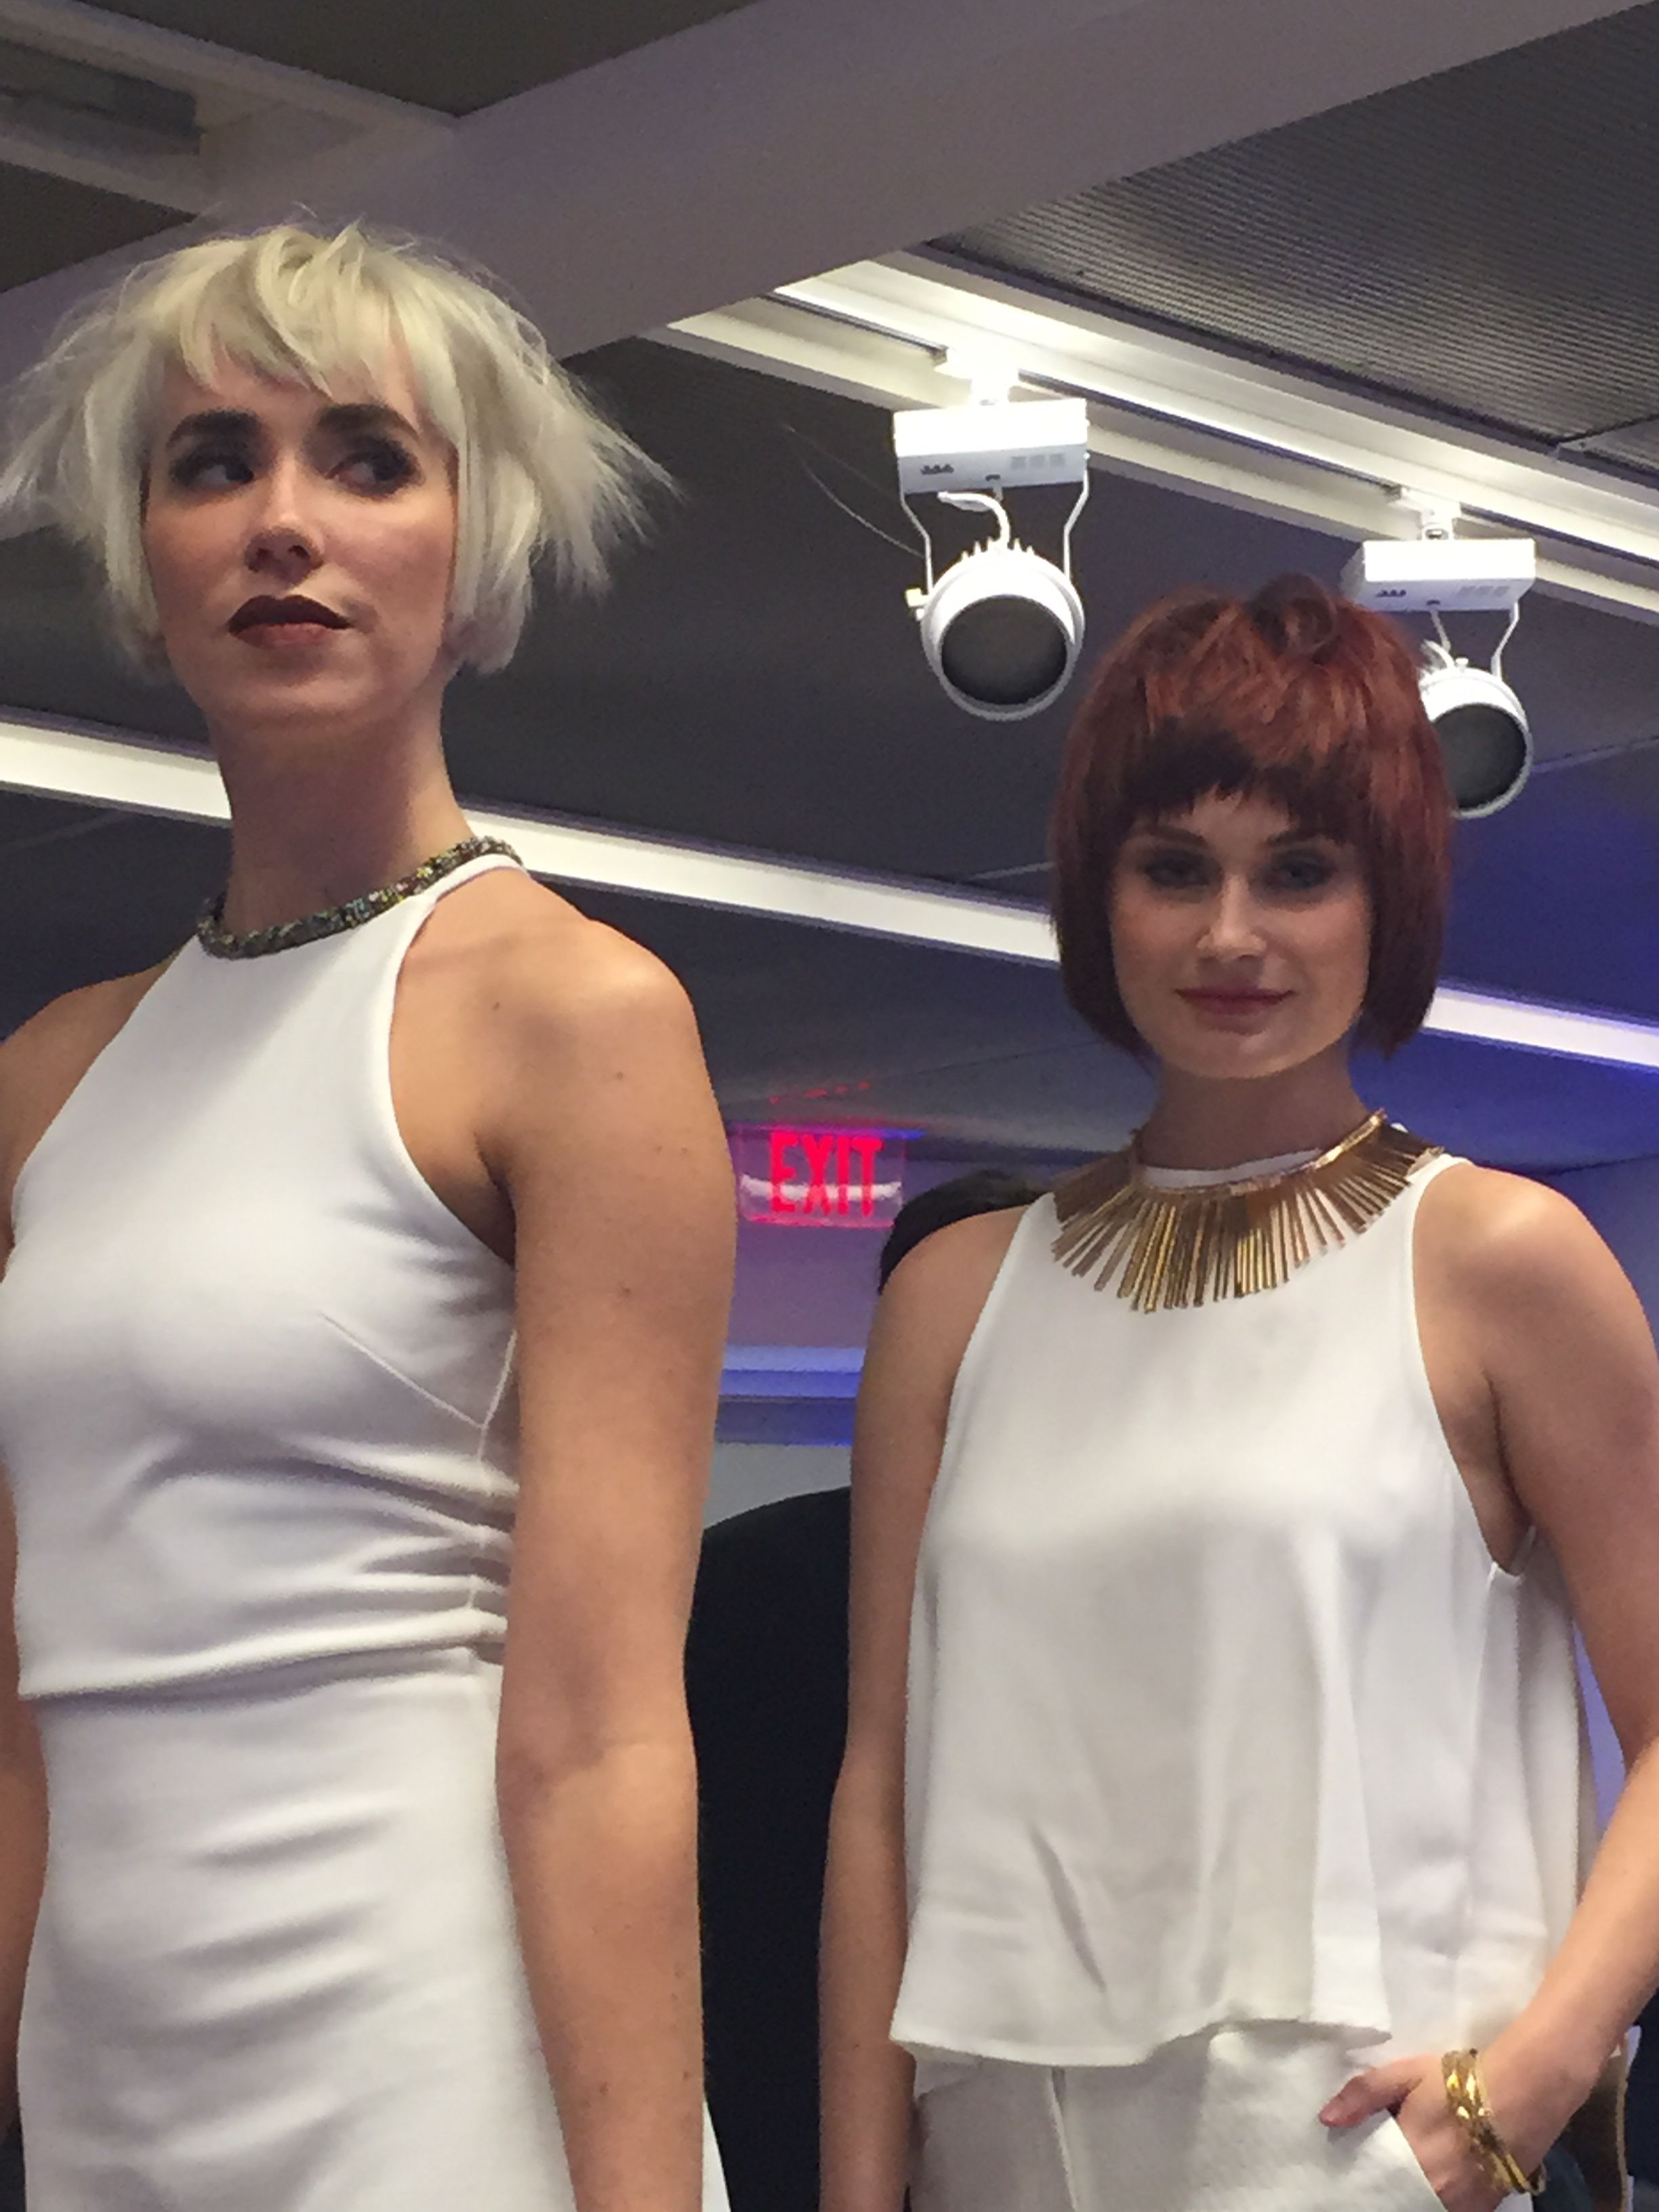 Speaking EIMI in LA: Wella Launches Styling Line for Creative Hair Professionals